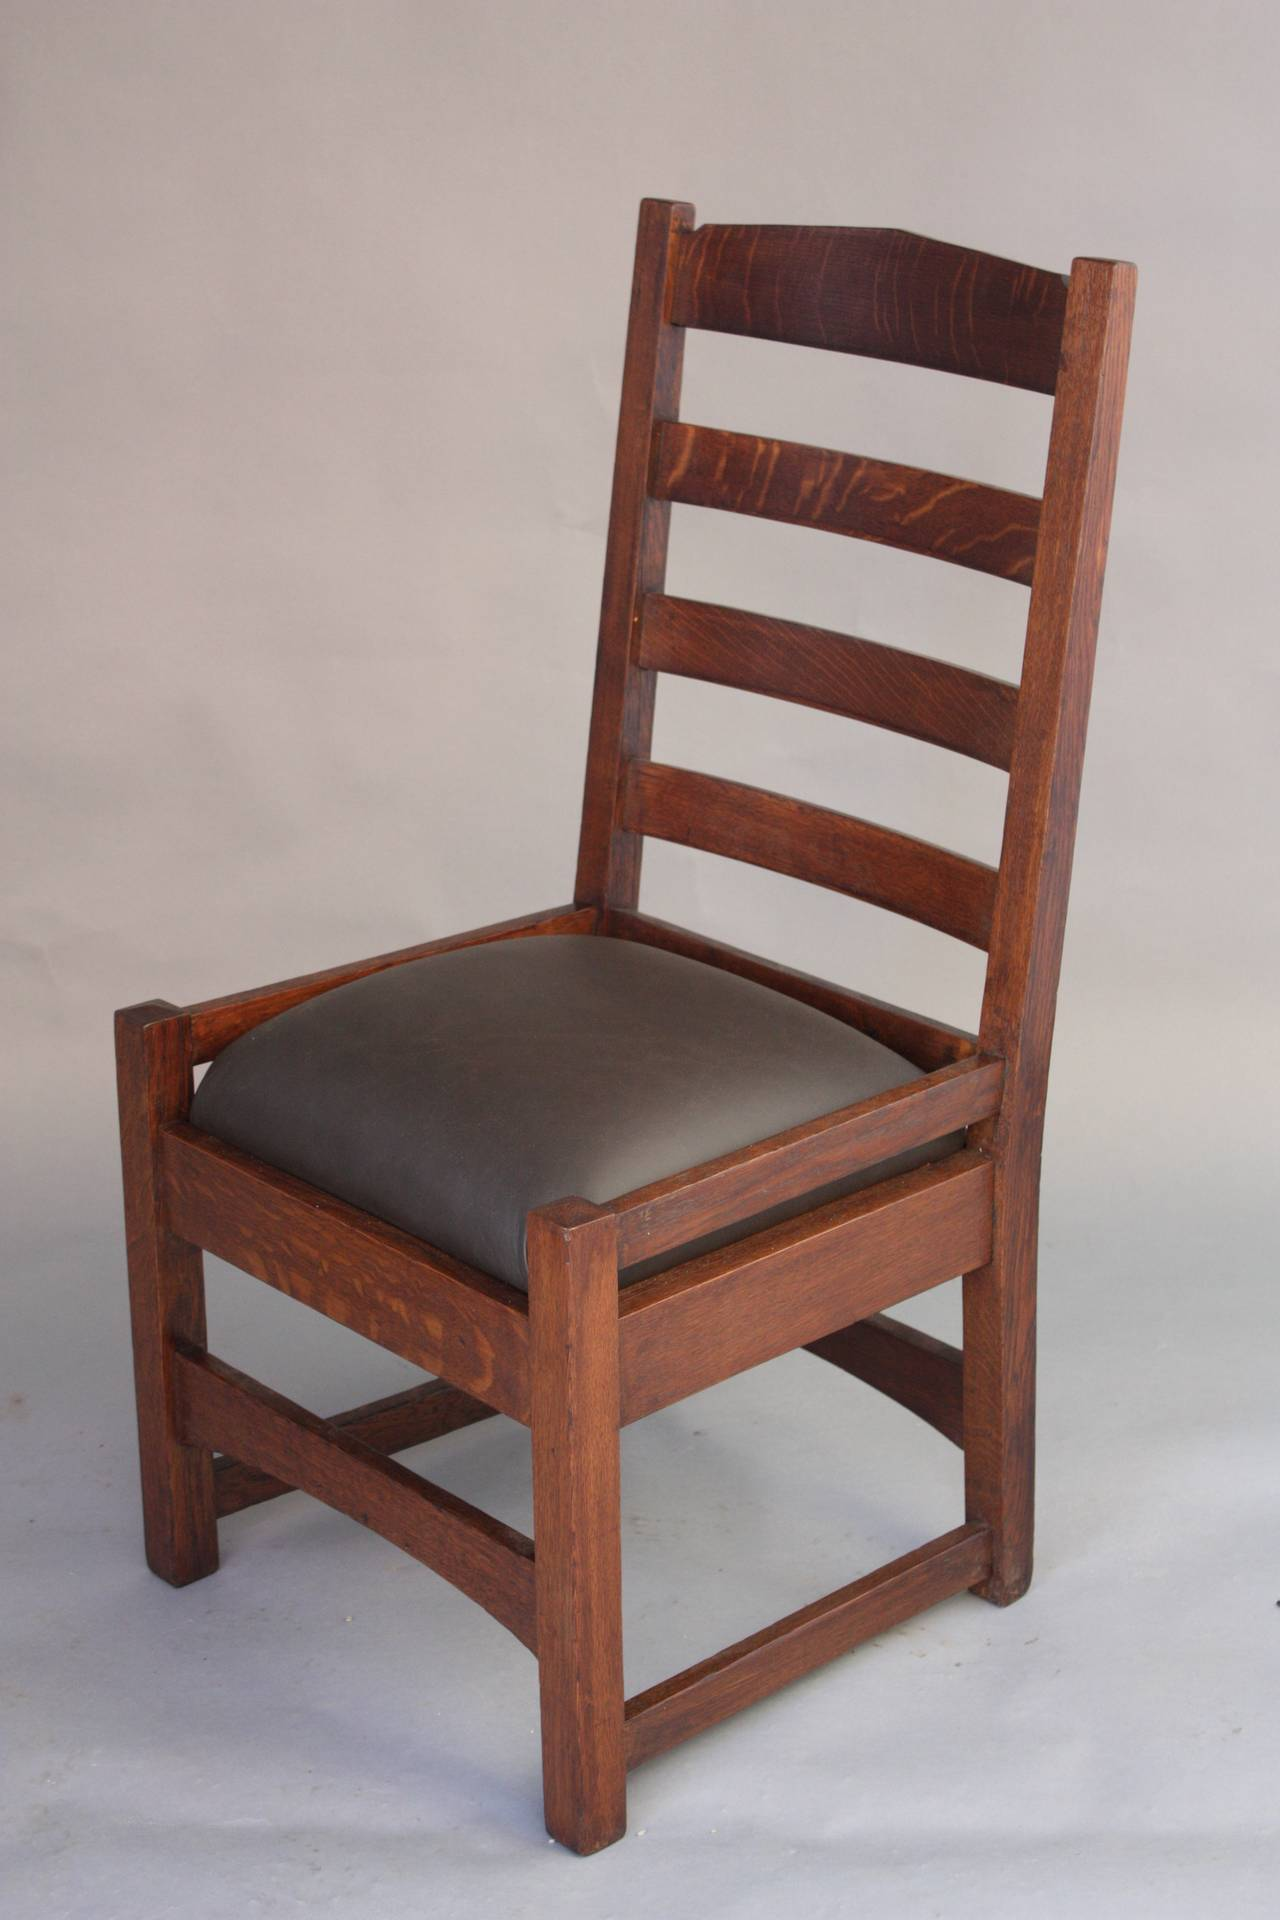 mission chairs for sale tables and rentals 1910 arts crafts oak ladder back chair